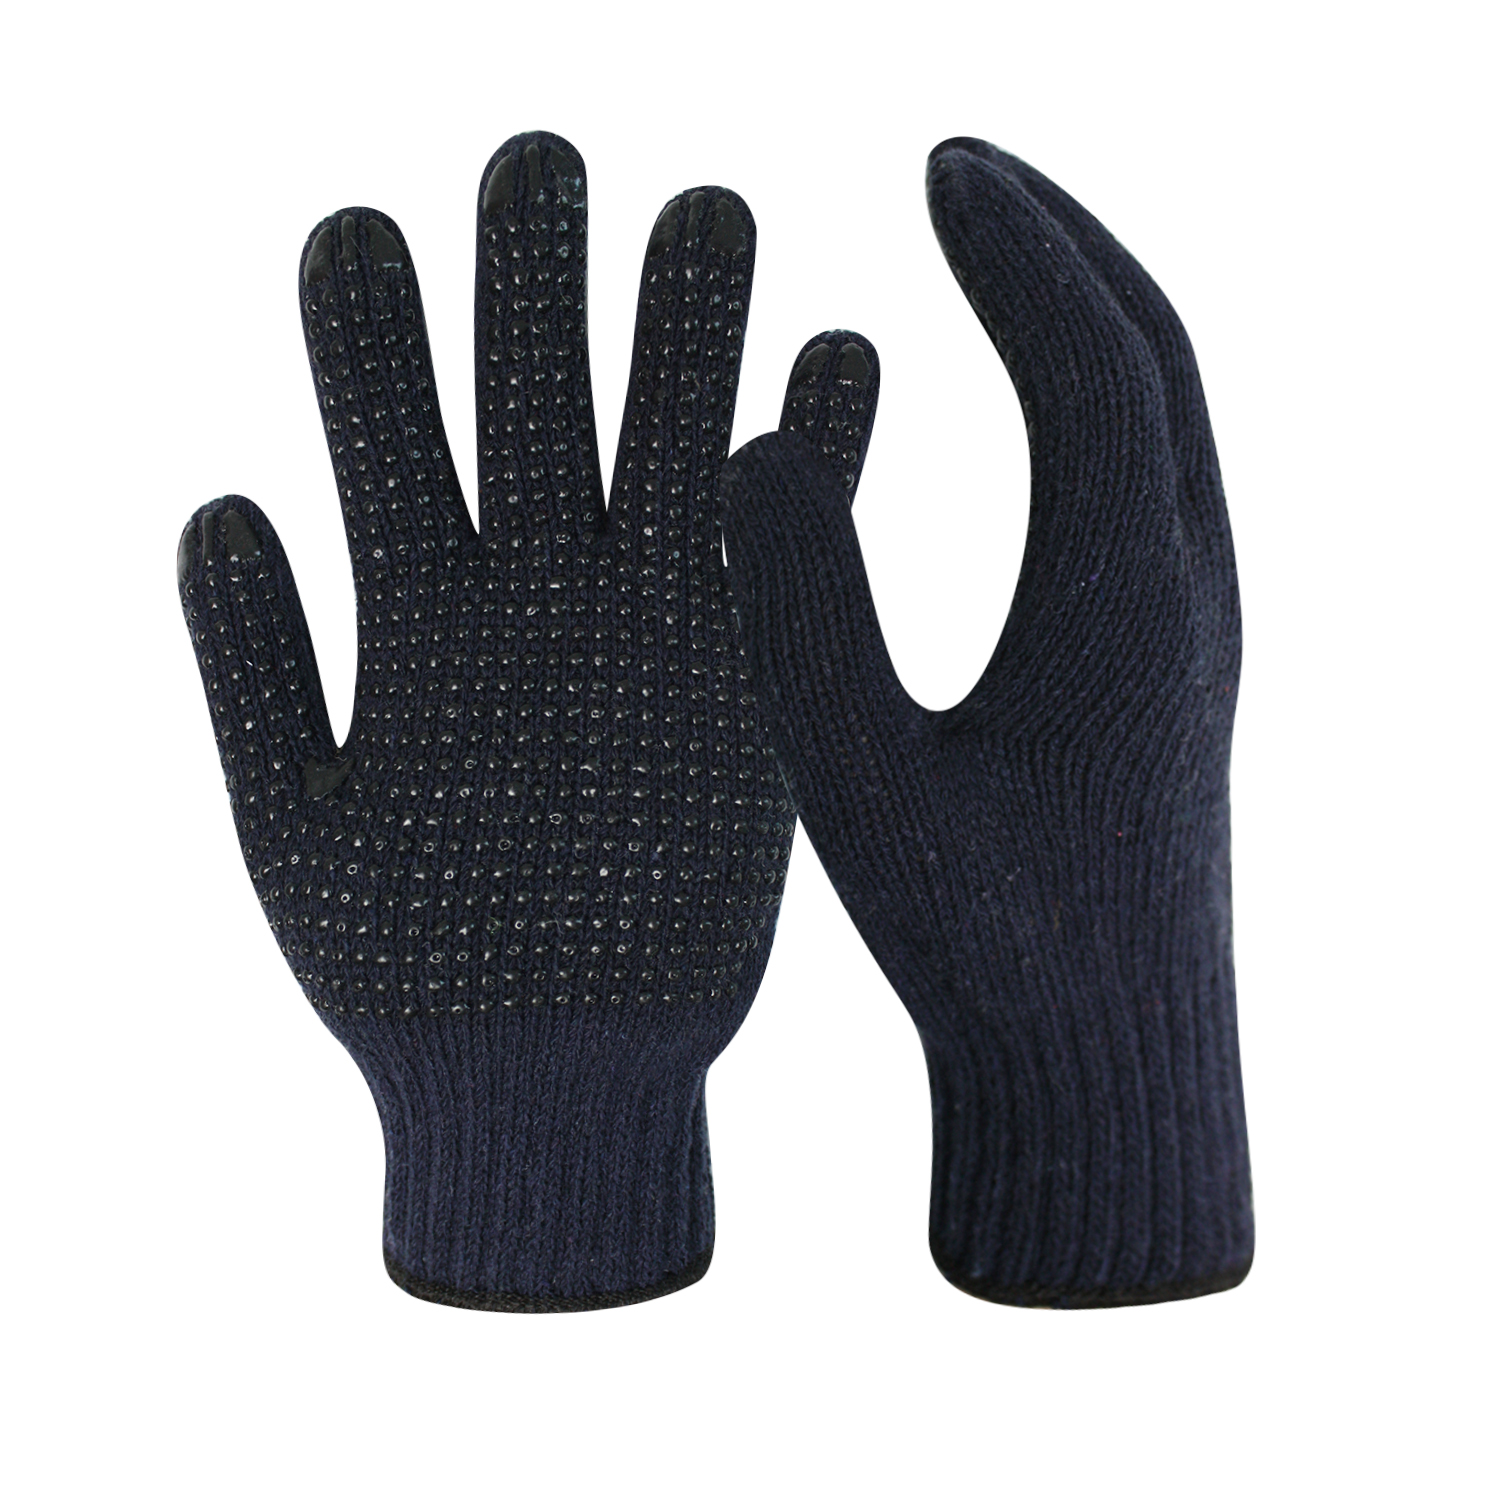 7G Navy Cotton Work Gloves Liner/CKG-010